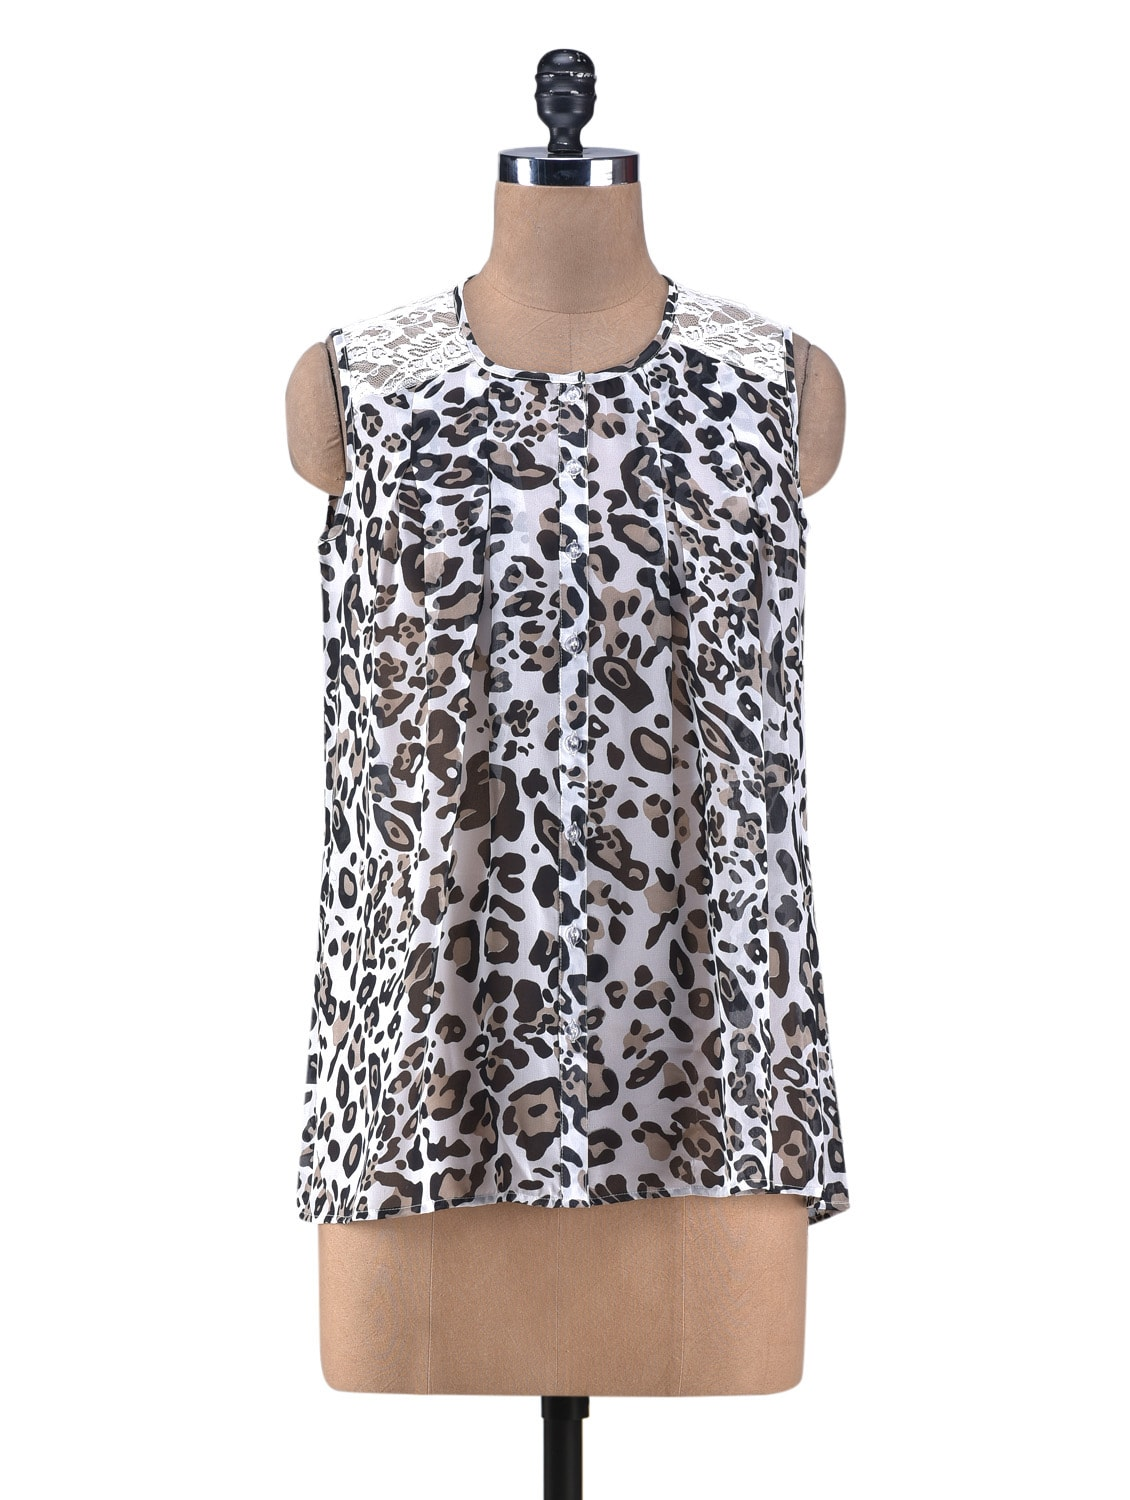 White Printed Gathered Top With Lace Yoke - By